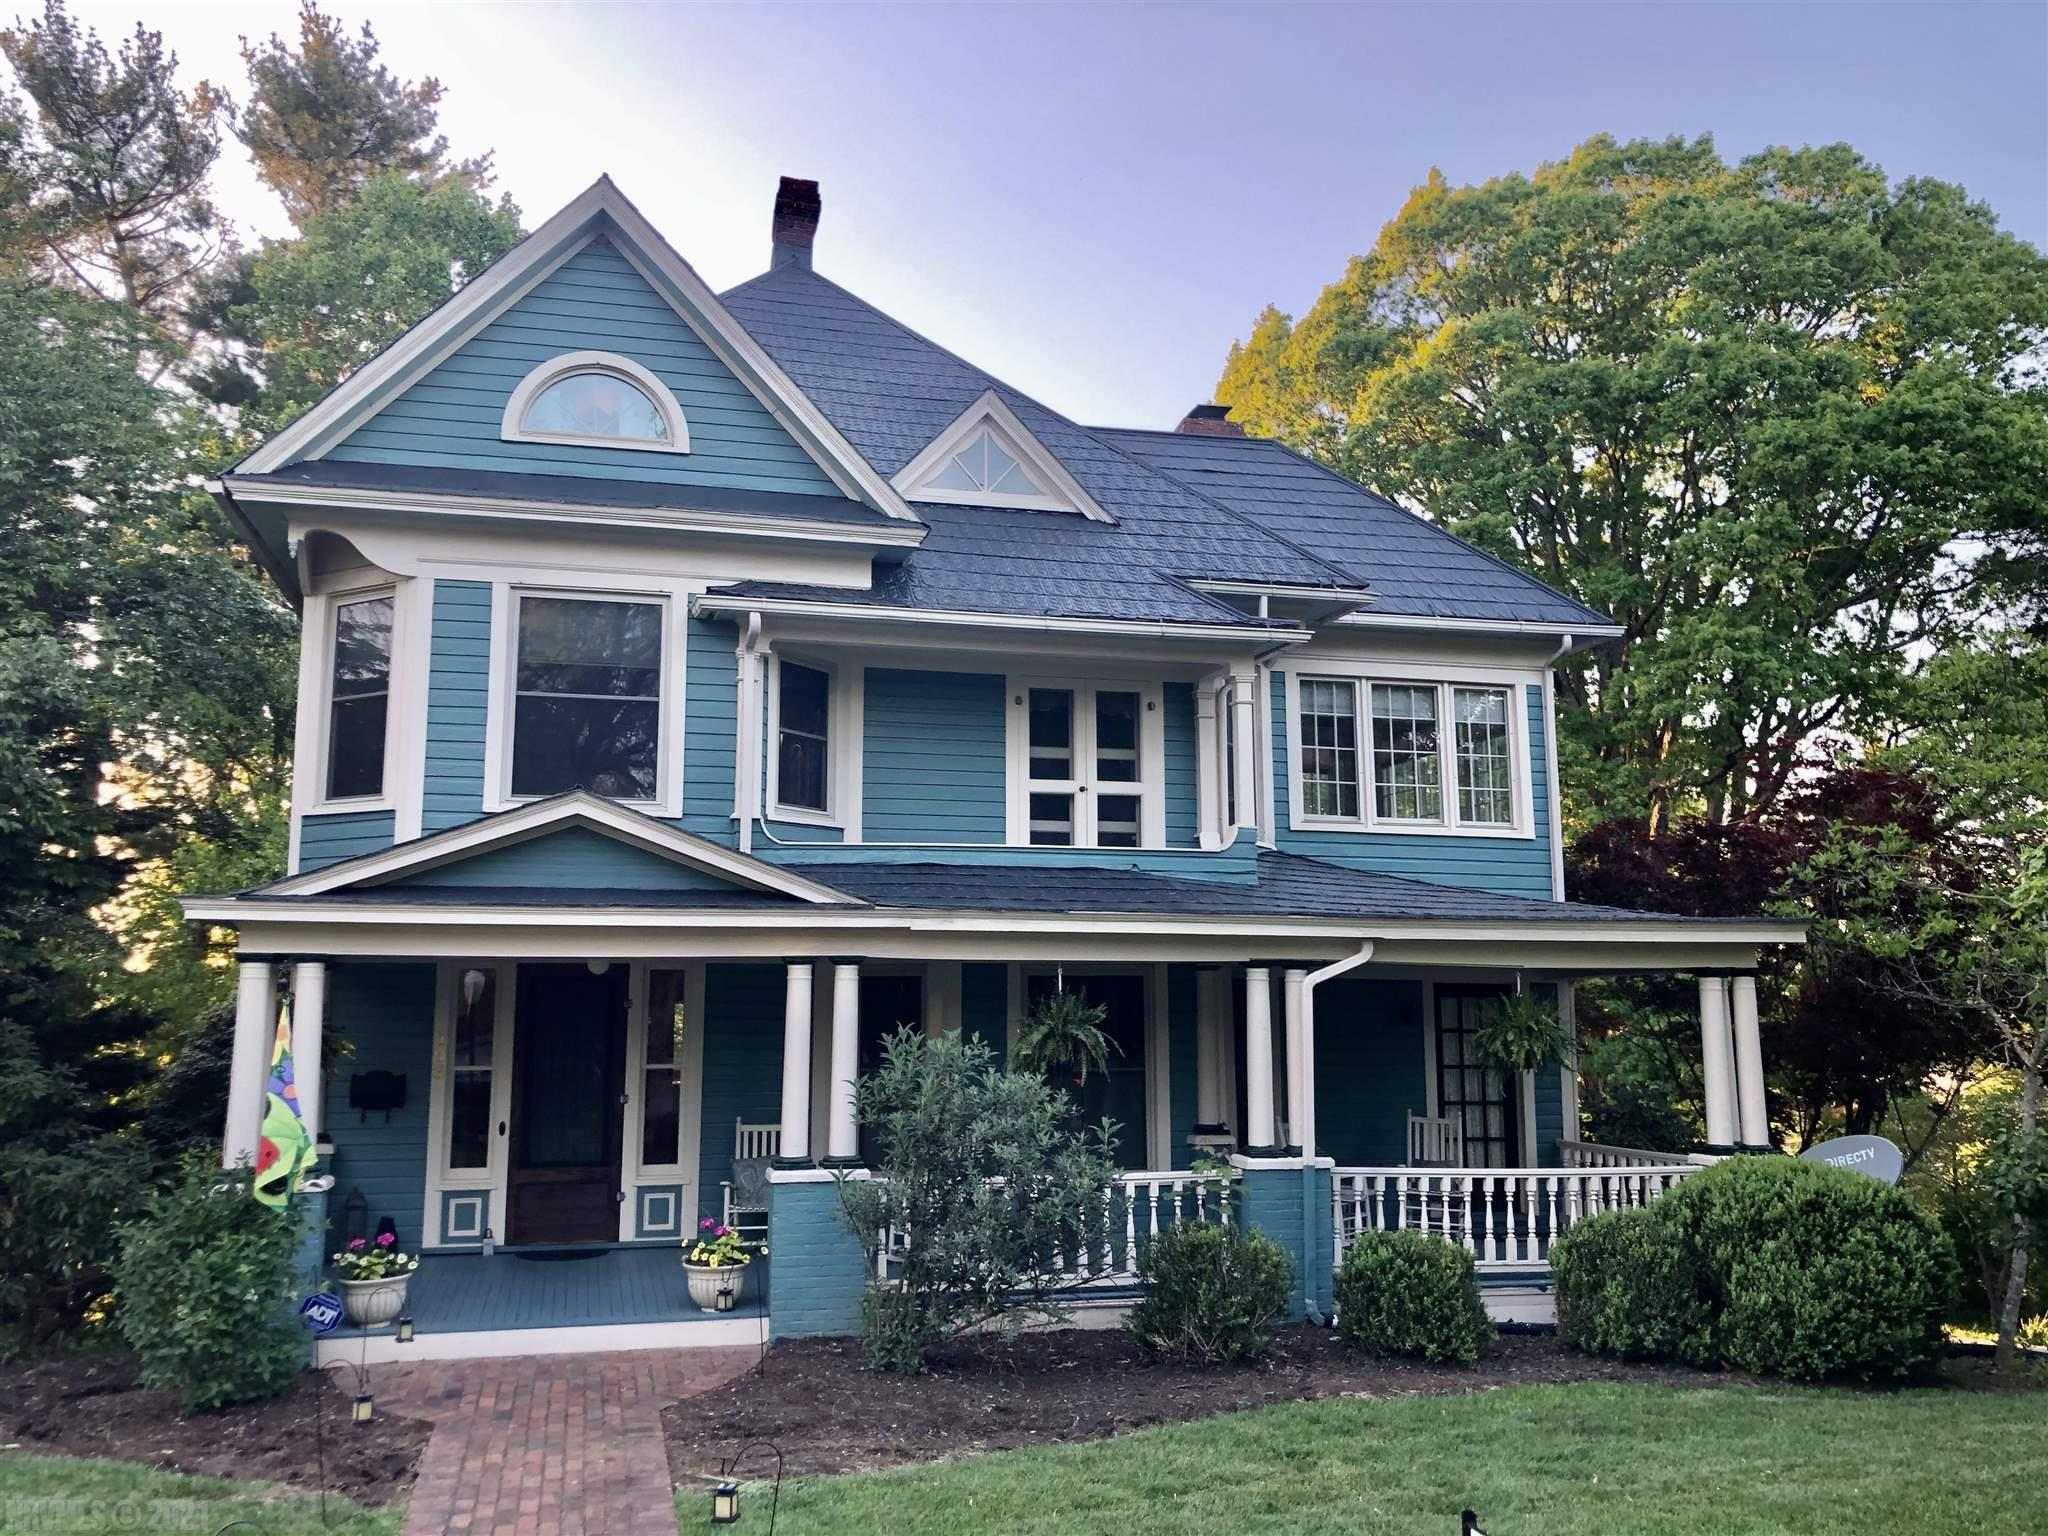 Exquisite Victorian! Character of the Original Home has been Maintained-Remodeled! 9'ceilings,Crown Molding, Hardwood Floors, Full Walk Out Basement, Cherry Kitchen w/New Granite Countertops, Butler's Panty w/Granite.  Gas Hot Water Furnace & 2 New Heat Pumps (4 floors). Front & Rear Stairs. Walk-up Attic w/NEW Master Suite, Window Seats, lots of closets, Full Bath w/Tile Shower! 4 Bedrooms and 3 Full Baths, Sun Porch, Office, Wine Room, and More! Home rewired and replumbed. Laundry moved to the 2nd floor-off the bathroom. All NEW Windows (except for Sun Porch) Beveled Glass in Doors, Curved Walls, Built-in China Cabinet, 20'x22'Rear Deck over Carport, Concrete Driveway. Professional Landscaping, Magnificent Mature Trees, Brick Sidewalk,Concrete Driveway. Newly Painted Roof May 2021. See complete list of Improvement in Documents. More pictures and virtual tour to come. Call for your private tour today!